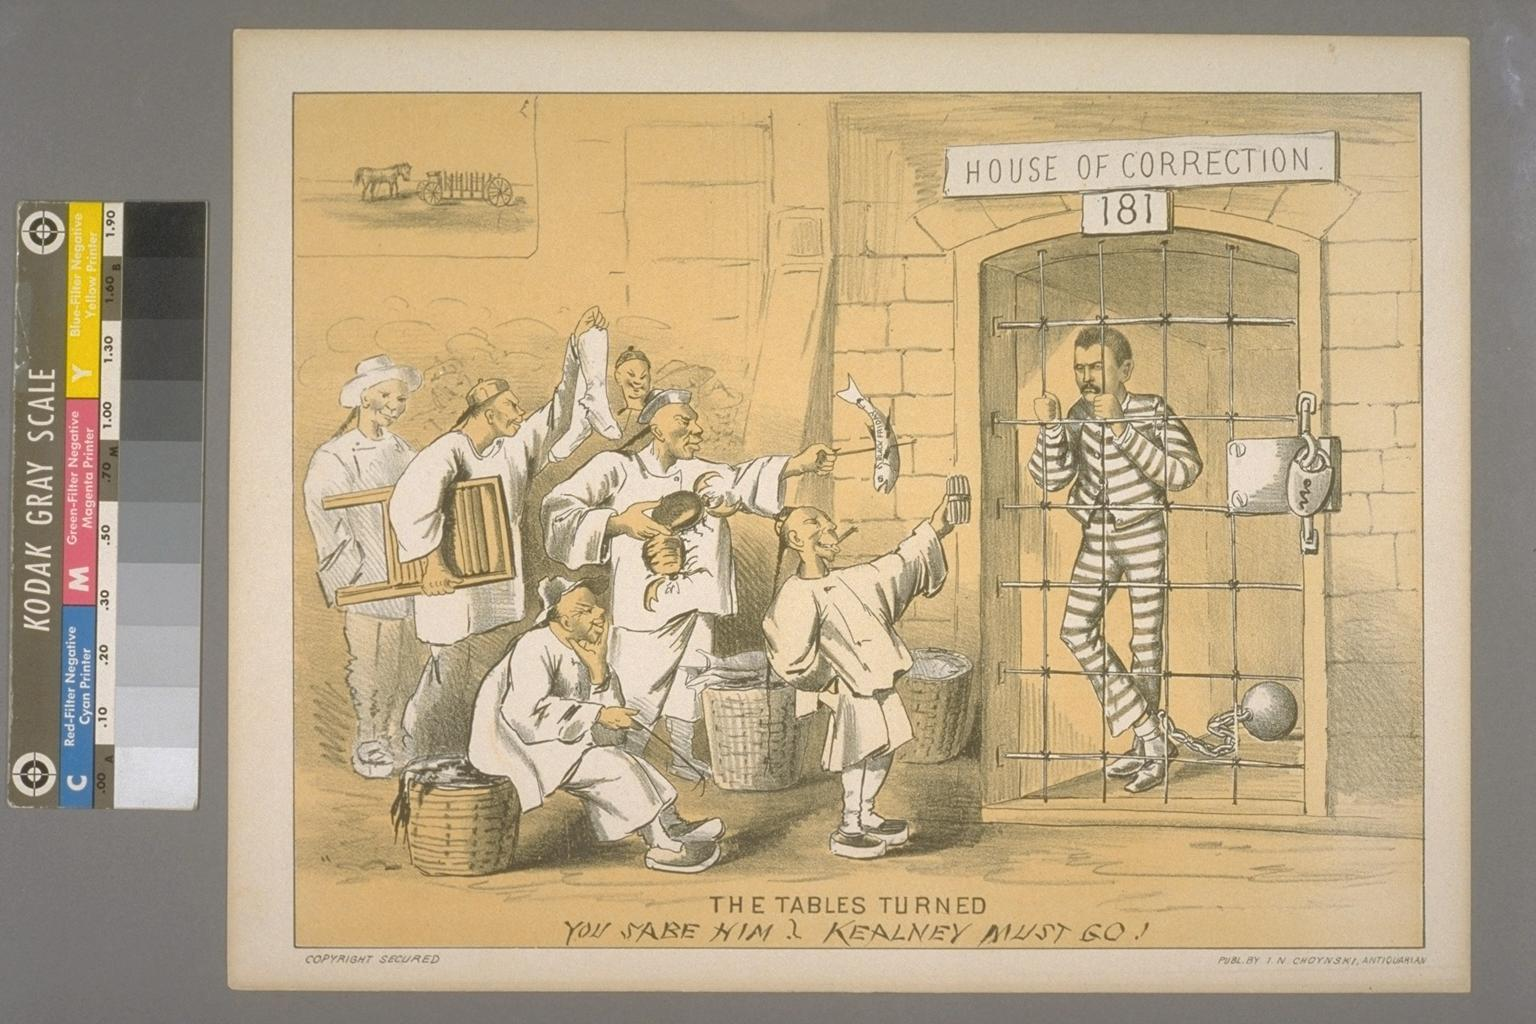 A political cartoon that shows the antagonism between workers and Chinese laborers over jobs.